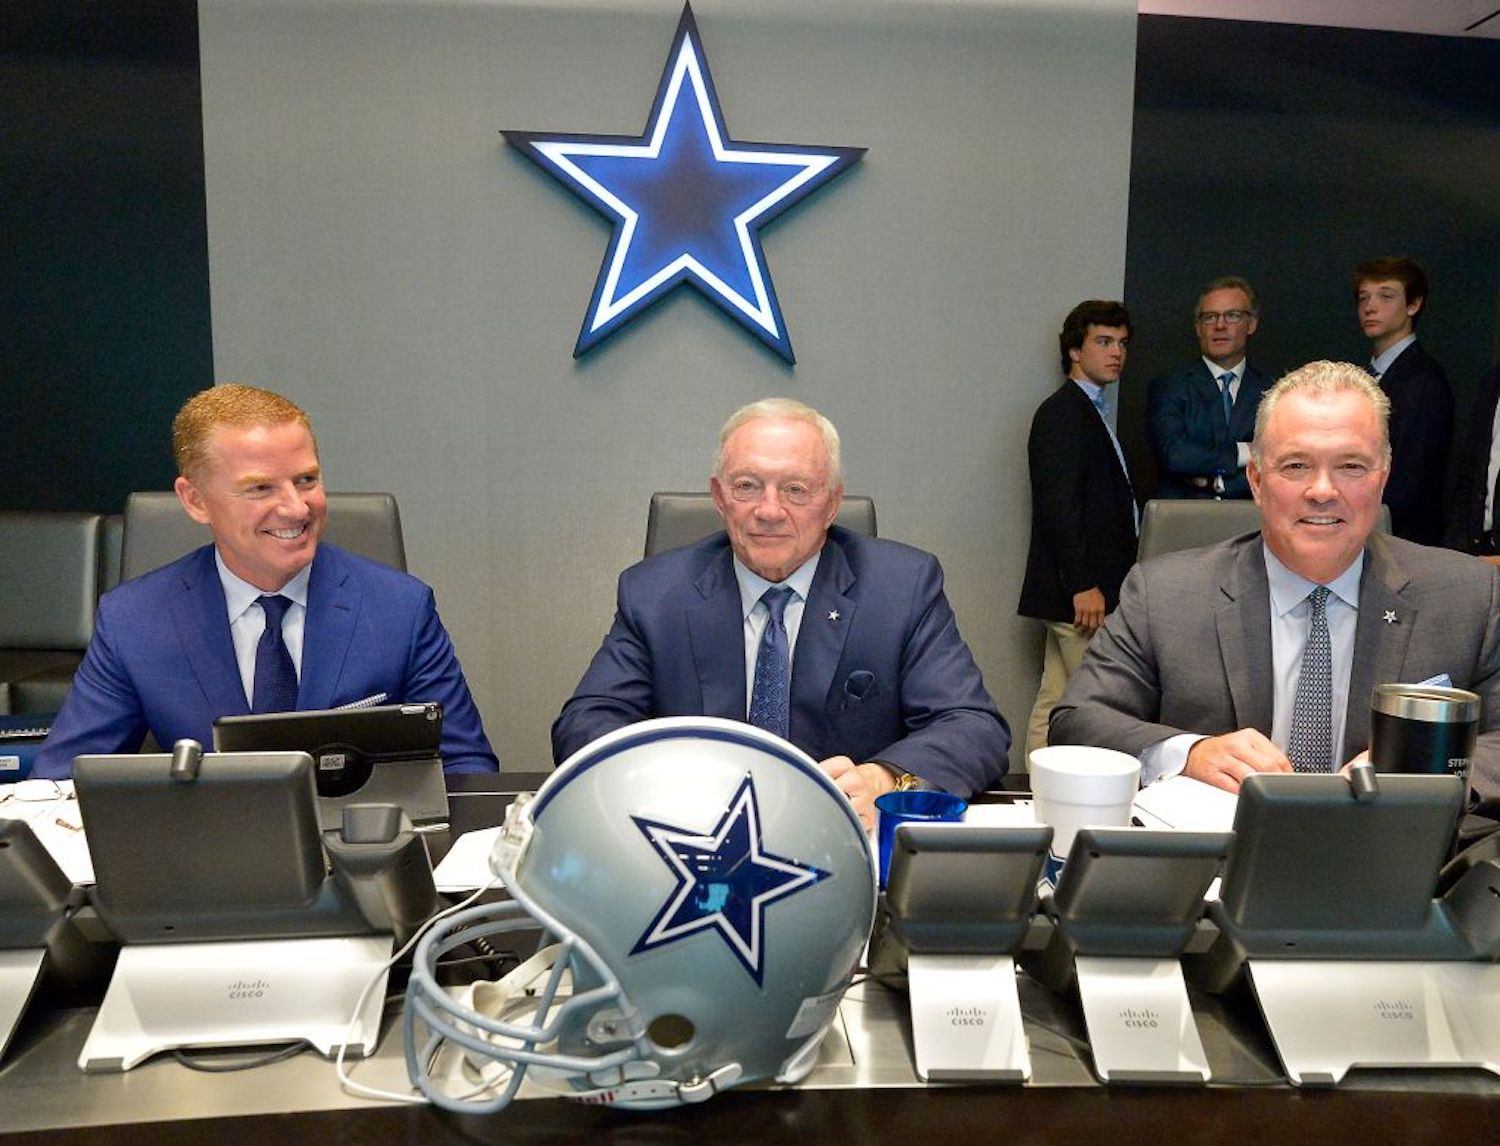 Jerry Jones got the steal of the NFL draft with CeeDee Lamb, but he might never have landed him without the help of his grandson.